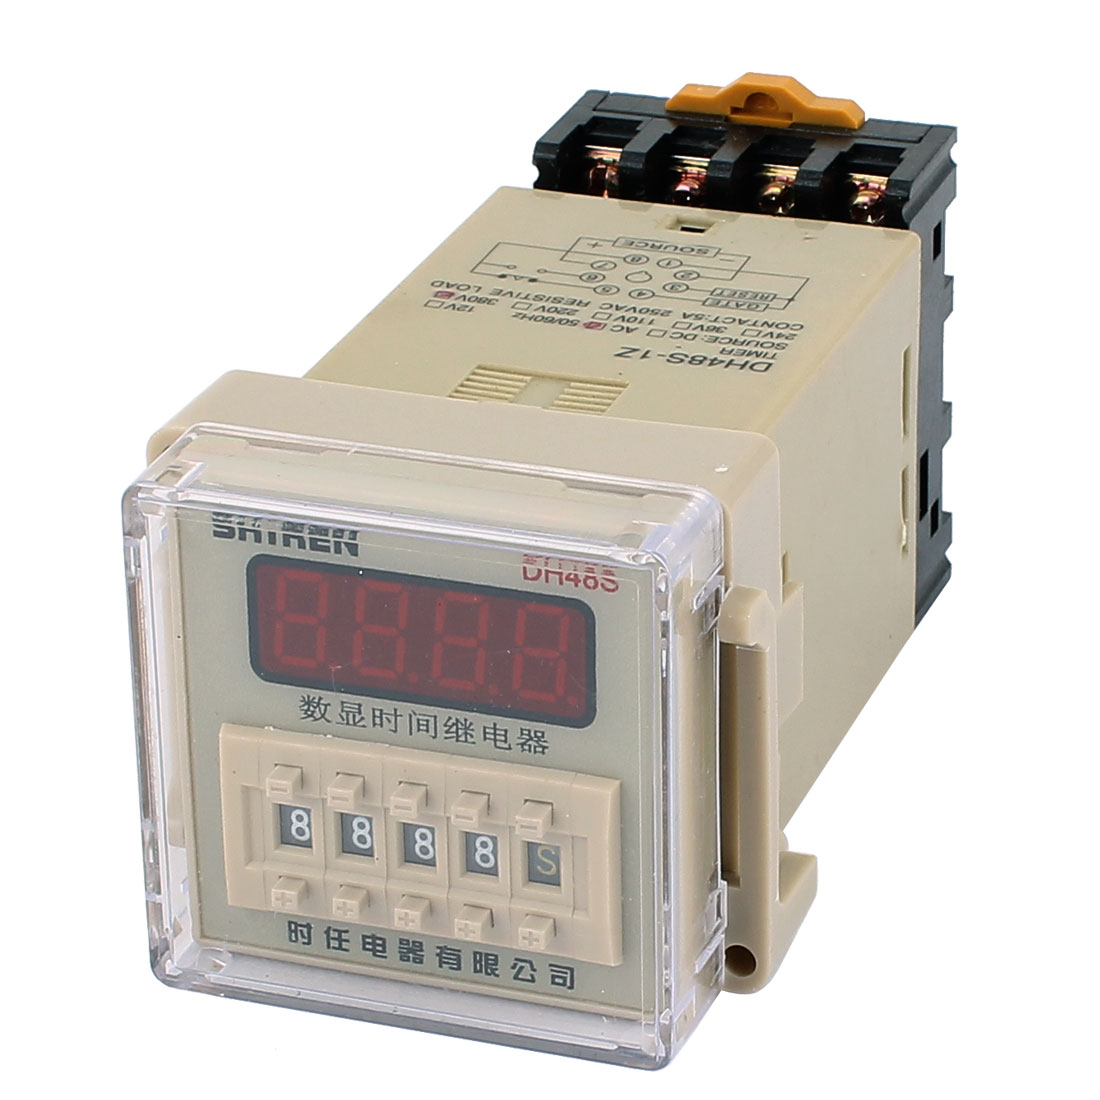 DH48S-1Z 8 Terminals SPST 0.01S-9999H LCD Display Time Timer Delay Relay AC 380V w Socket